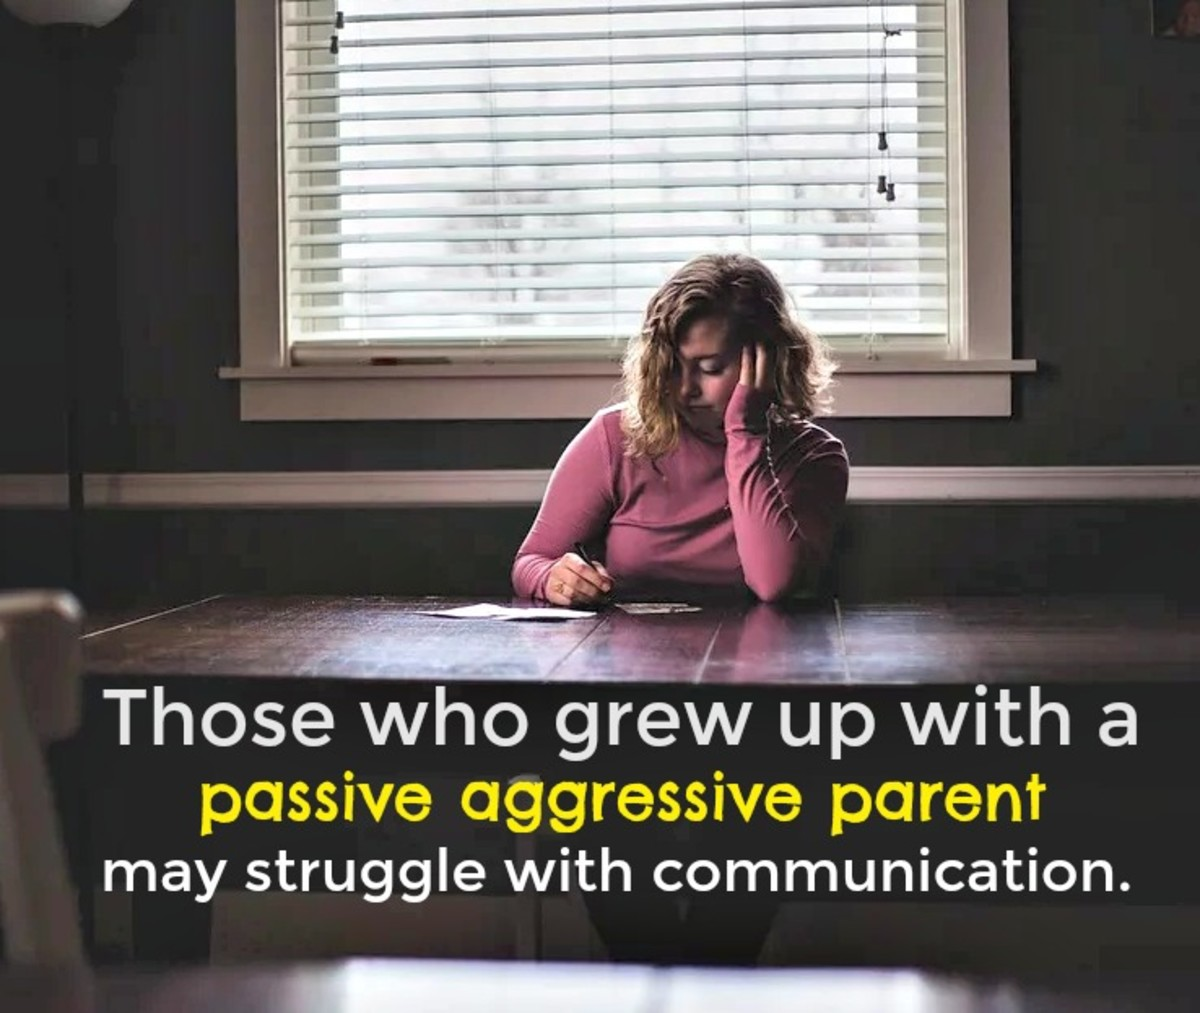 3 Ways Having a Passive Aggressive Parent Negatively Impacts You